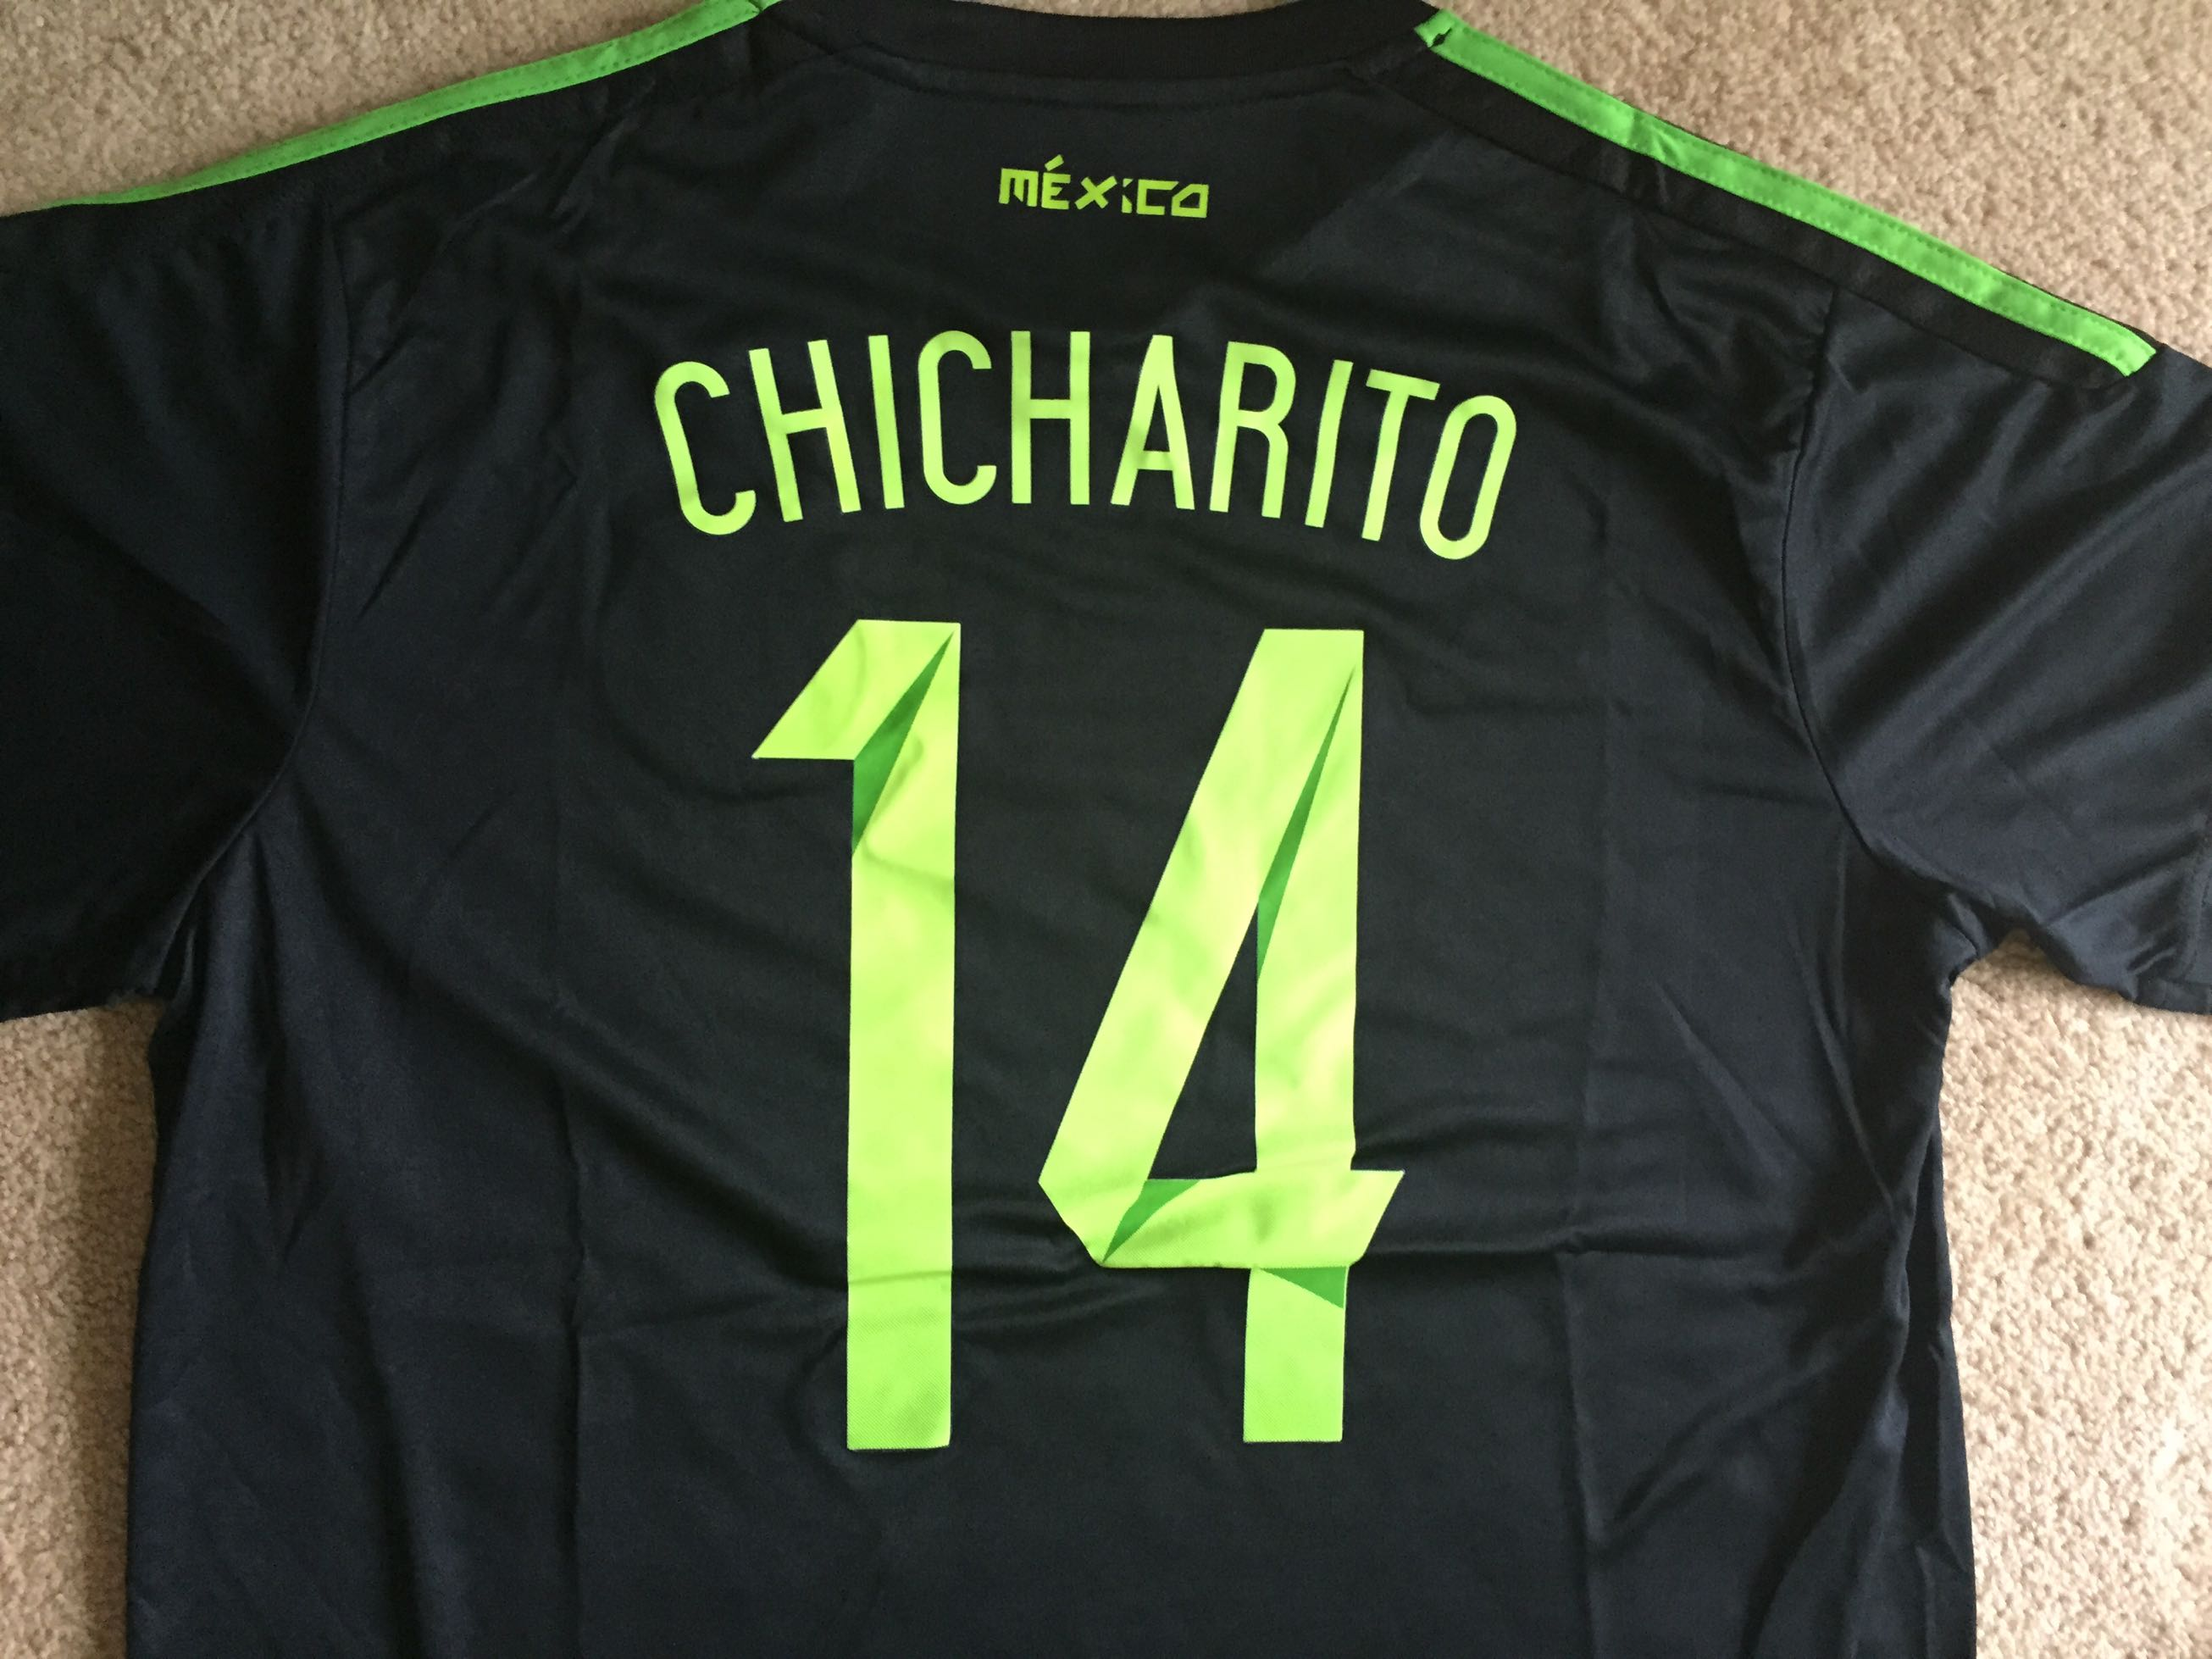 outlet store 20e16 66608 Javier Hernandez Chicharito Mexico Soccer Jersey. Size Large. New with  tags! Best offer! in Houston |$45